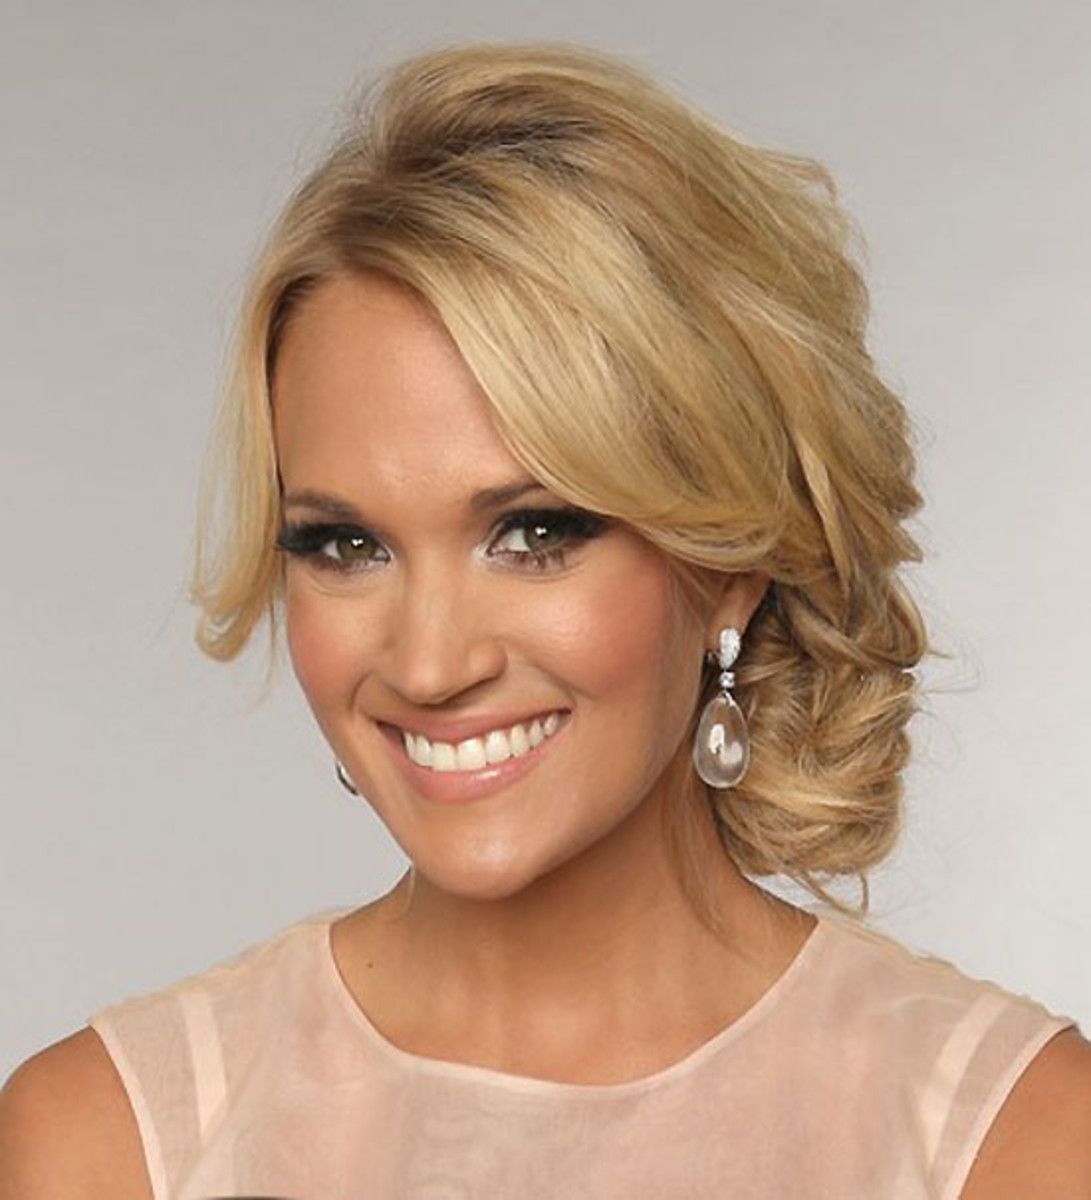 carrie-underwood-cmt-music-awards_June 2013